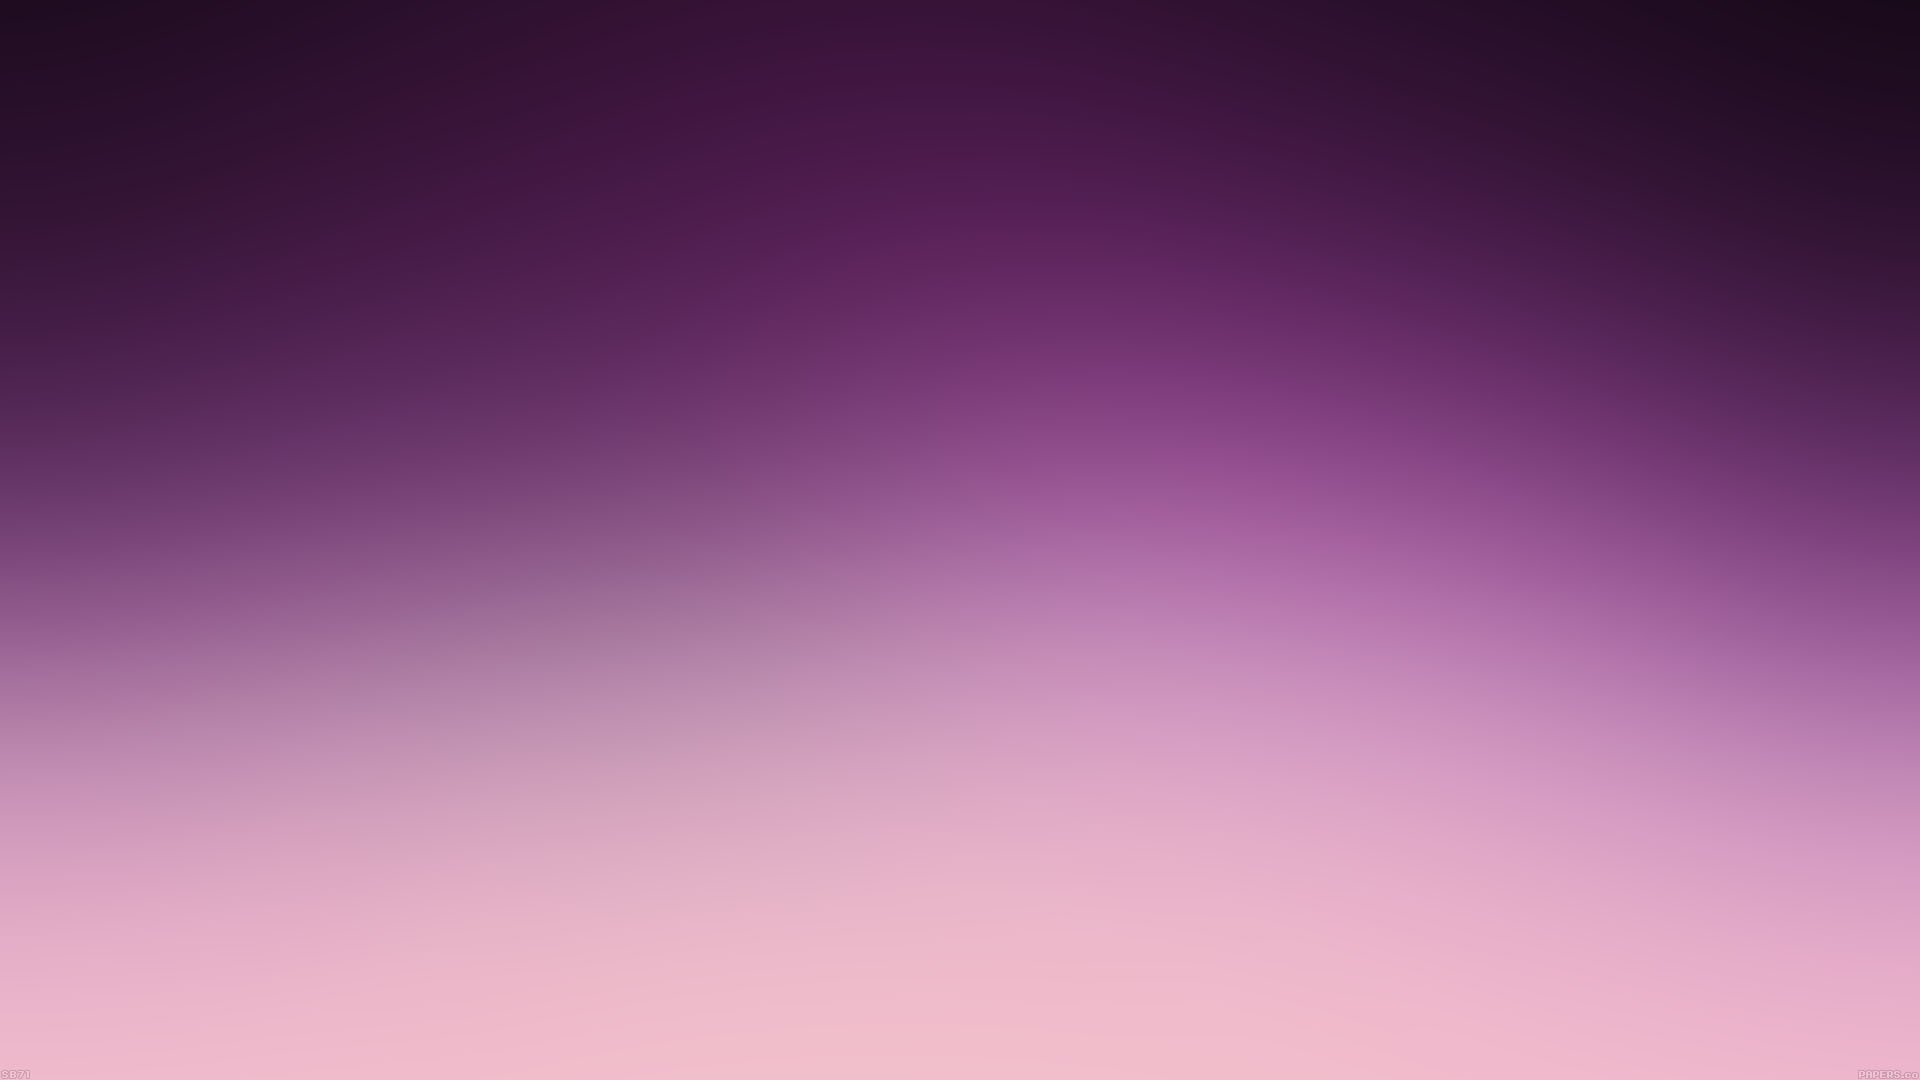 Pinterest Wallpapers Fall Sb71 Romantic Purple Blur Papers Co